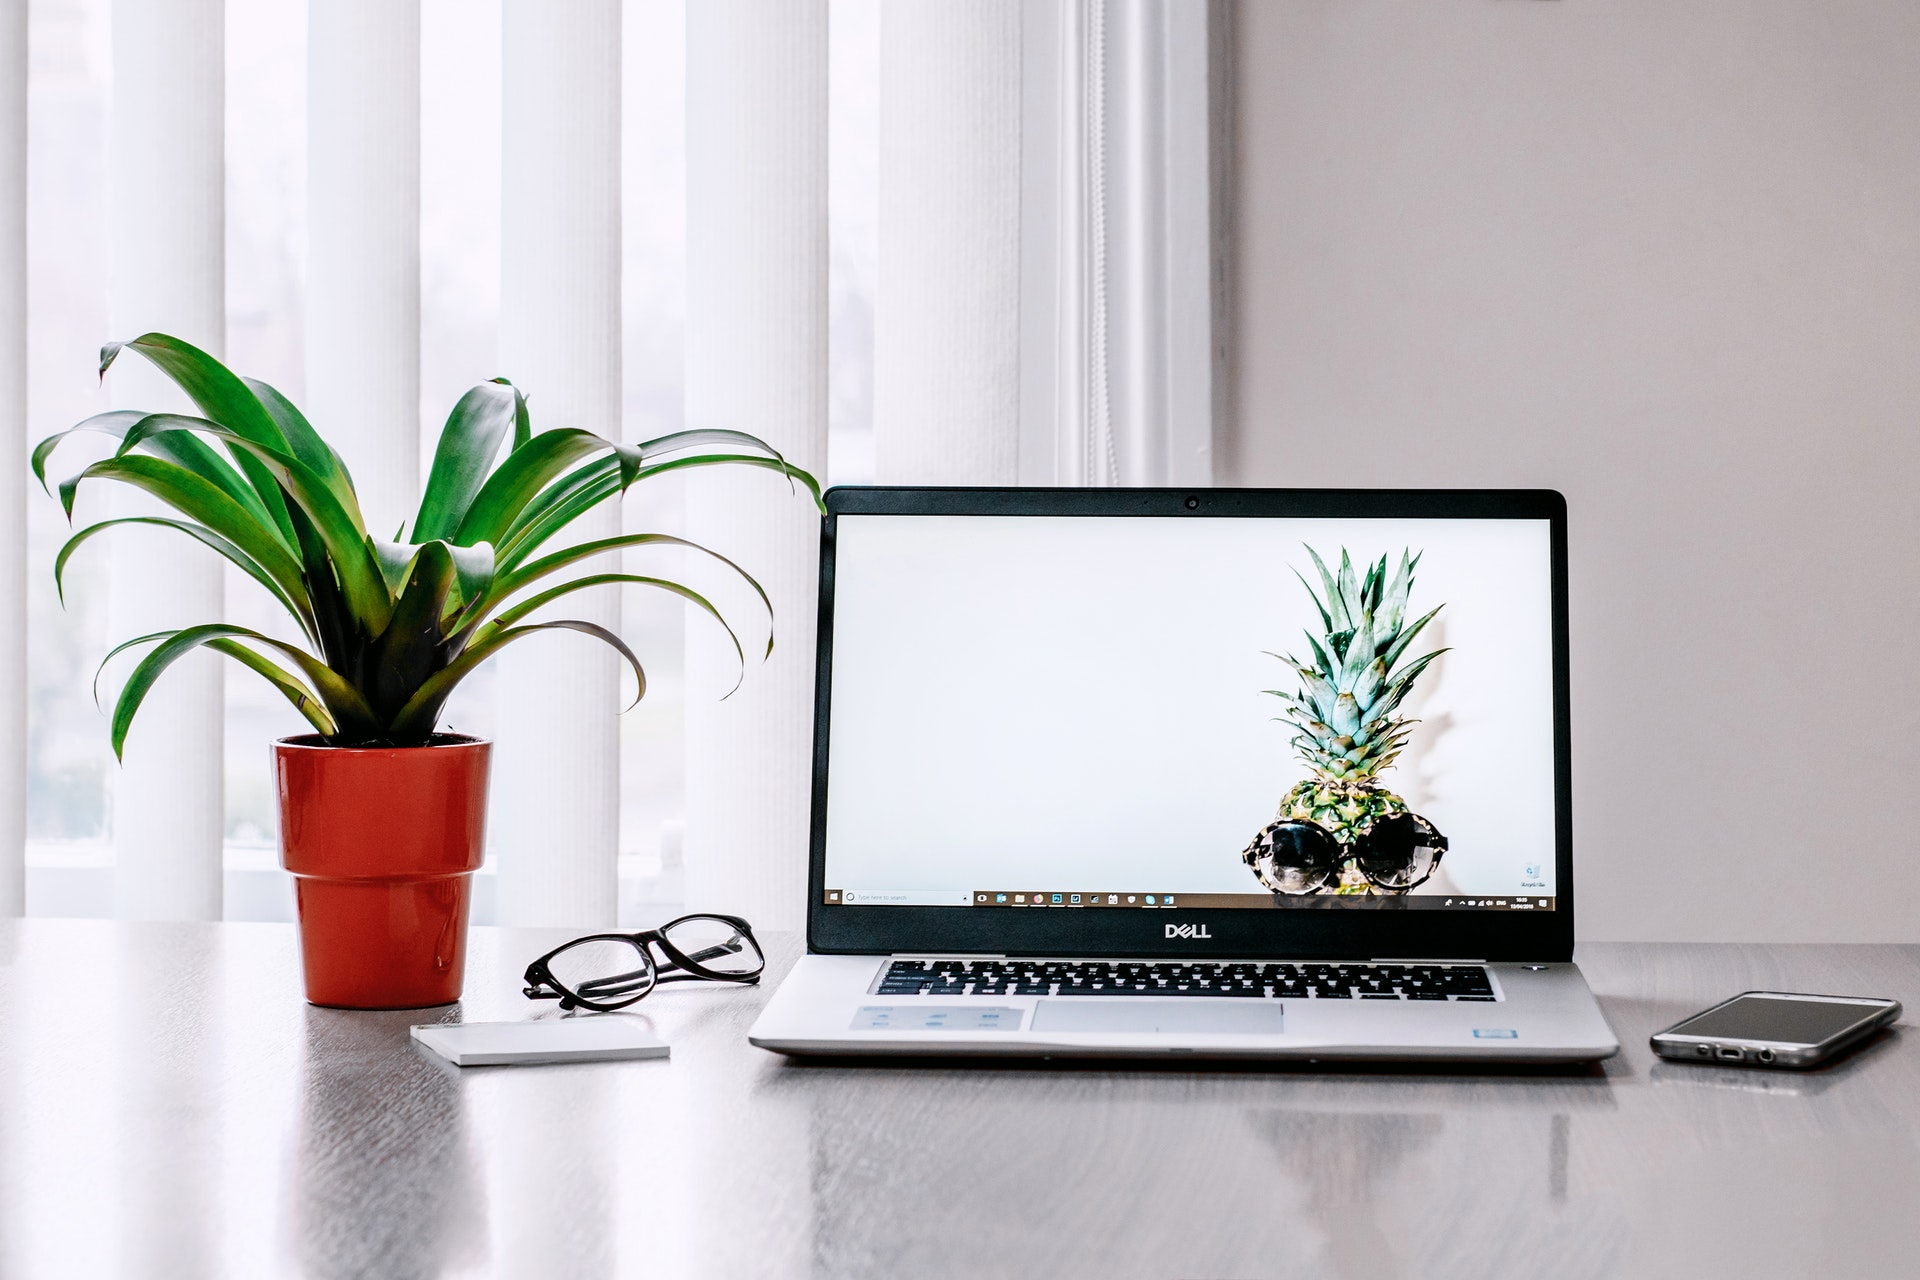 Office plants really help with positive workplace psychology